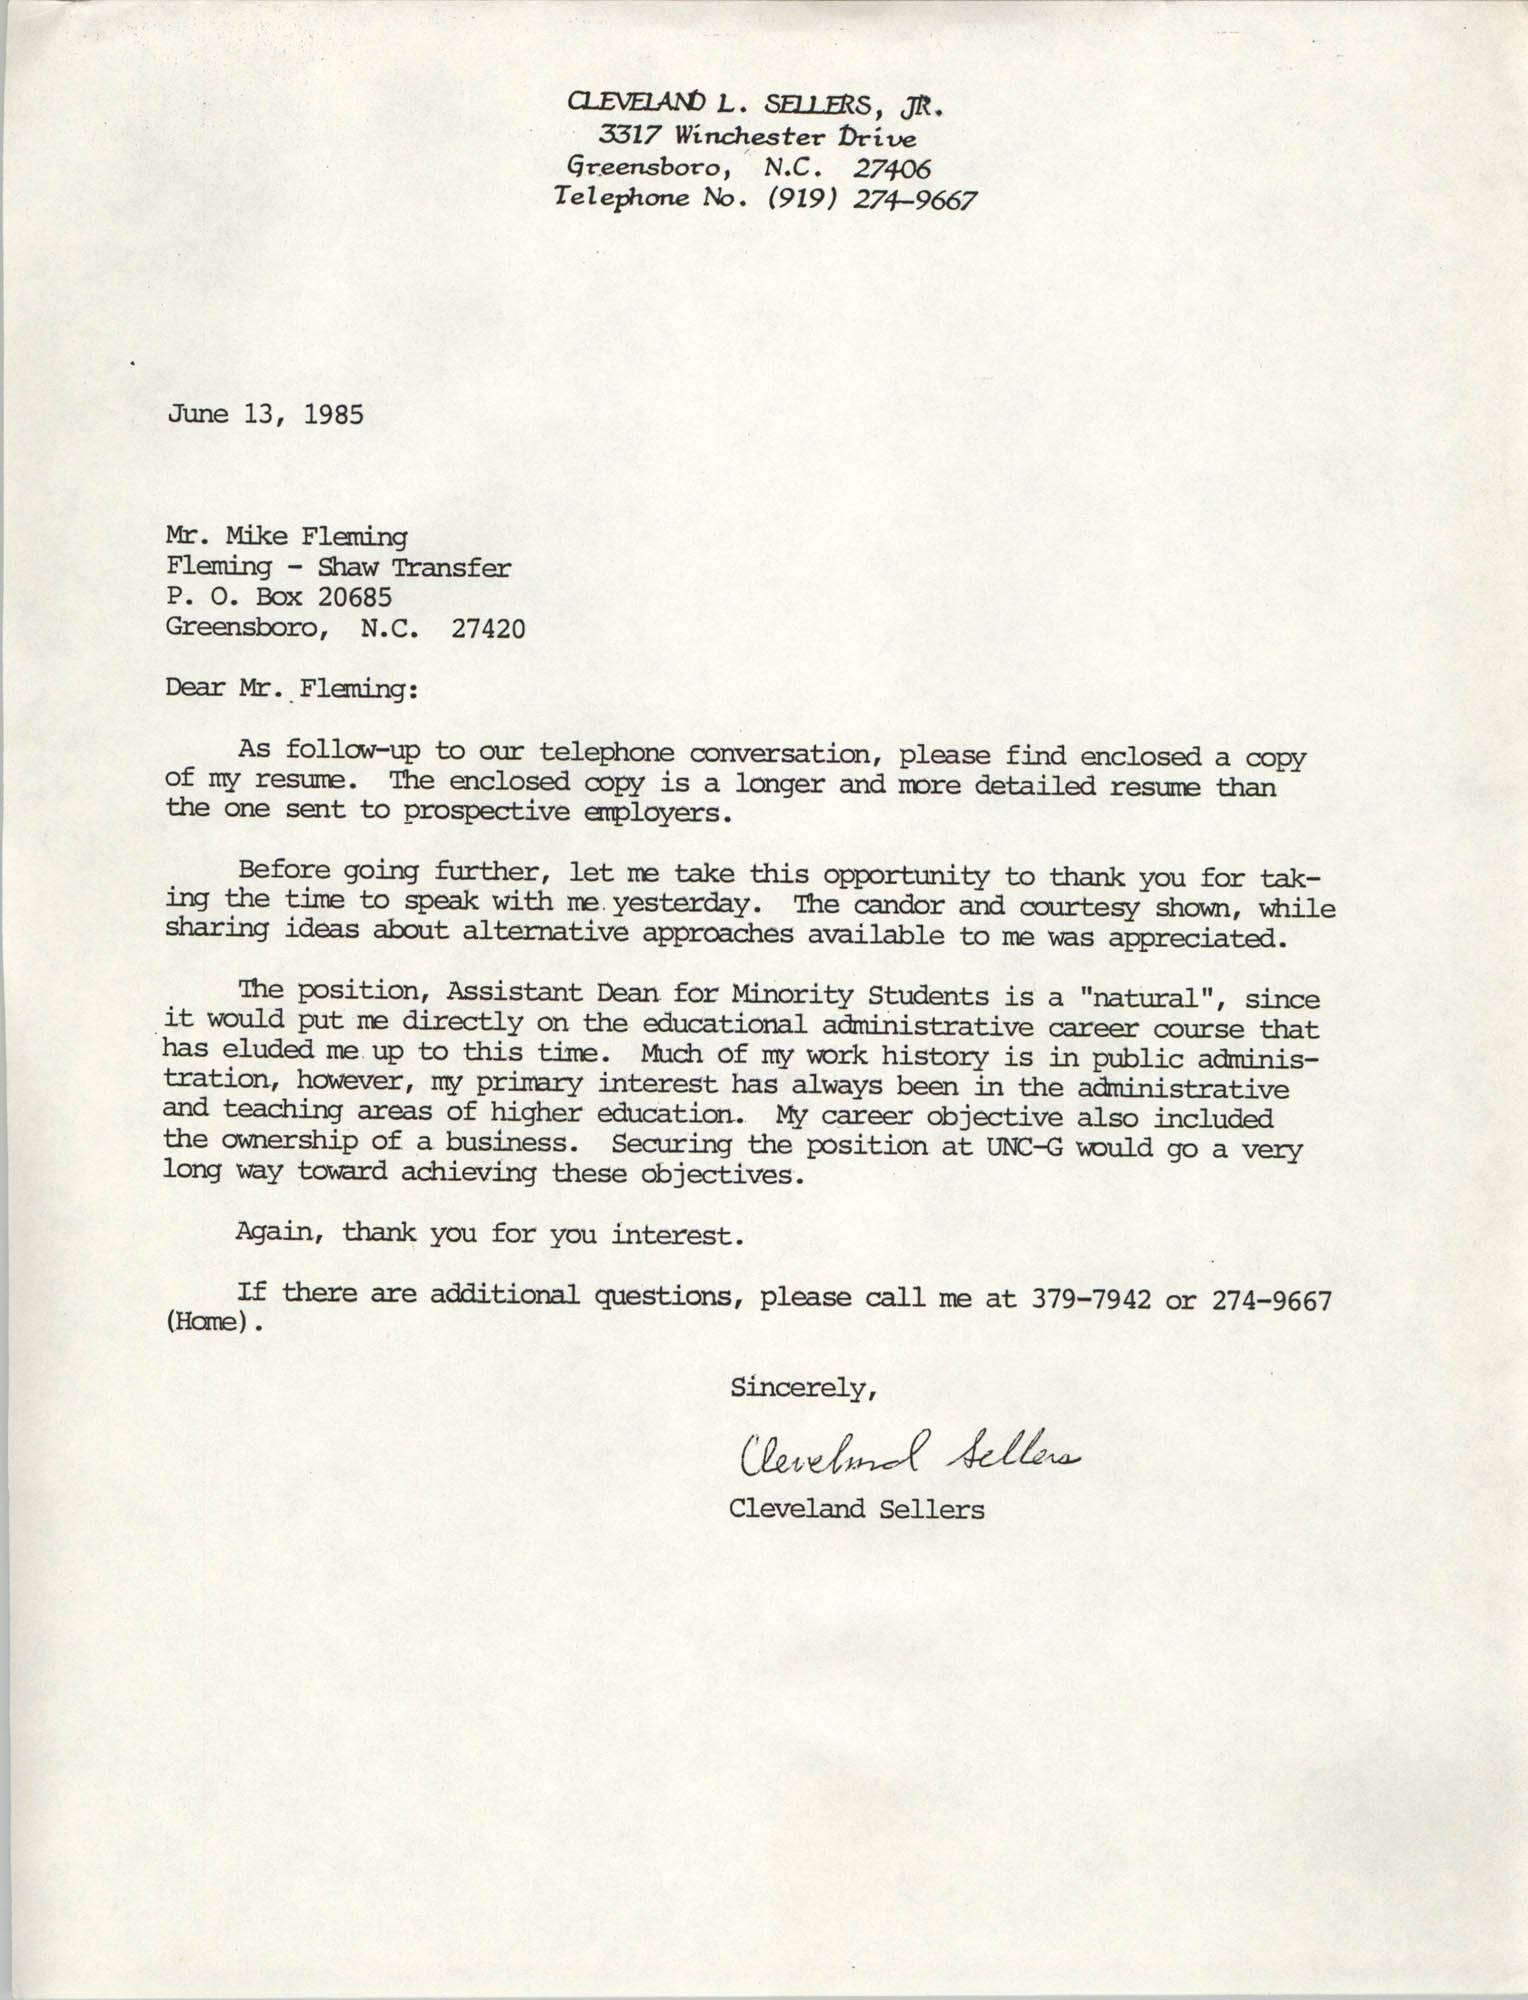 Letter from Cleveland Sellers to Mike Fleming, June 13, 1985